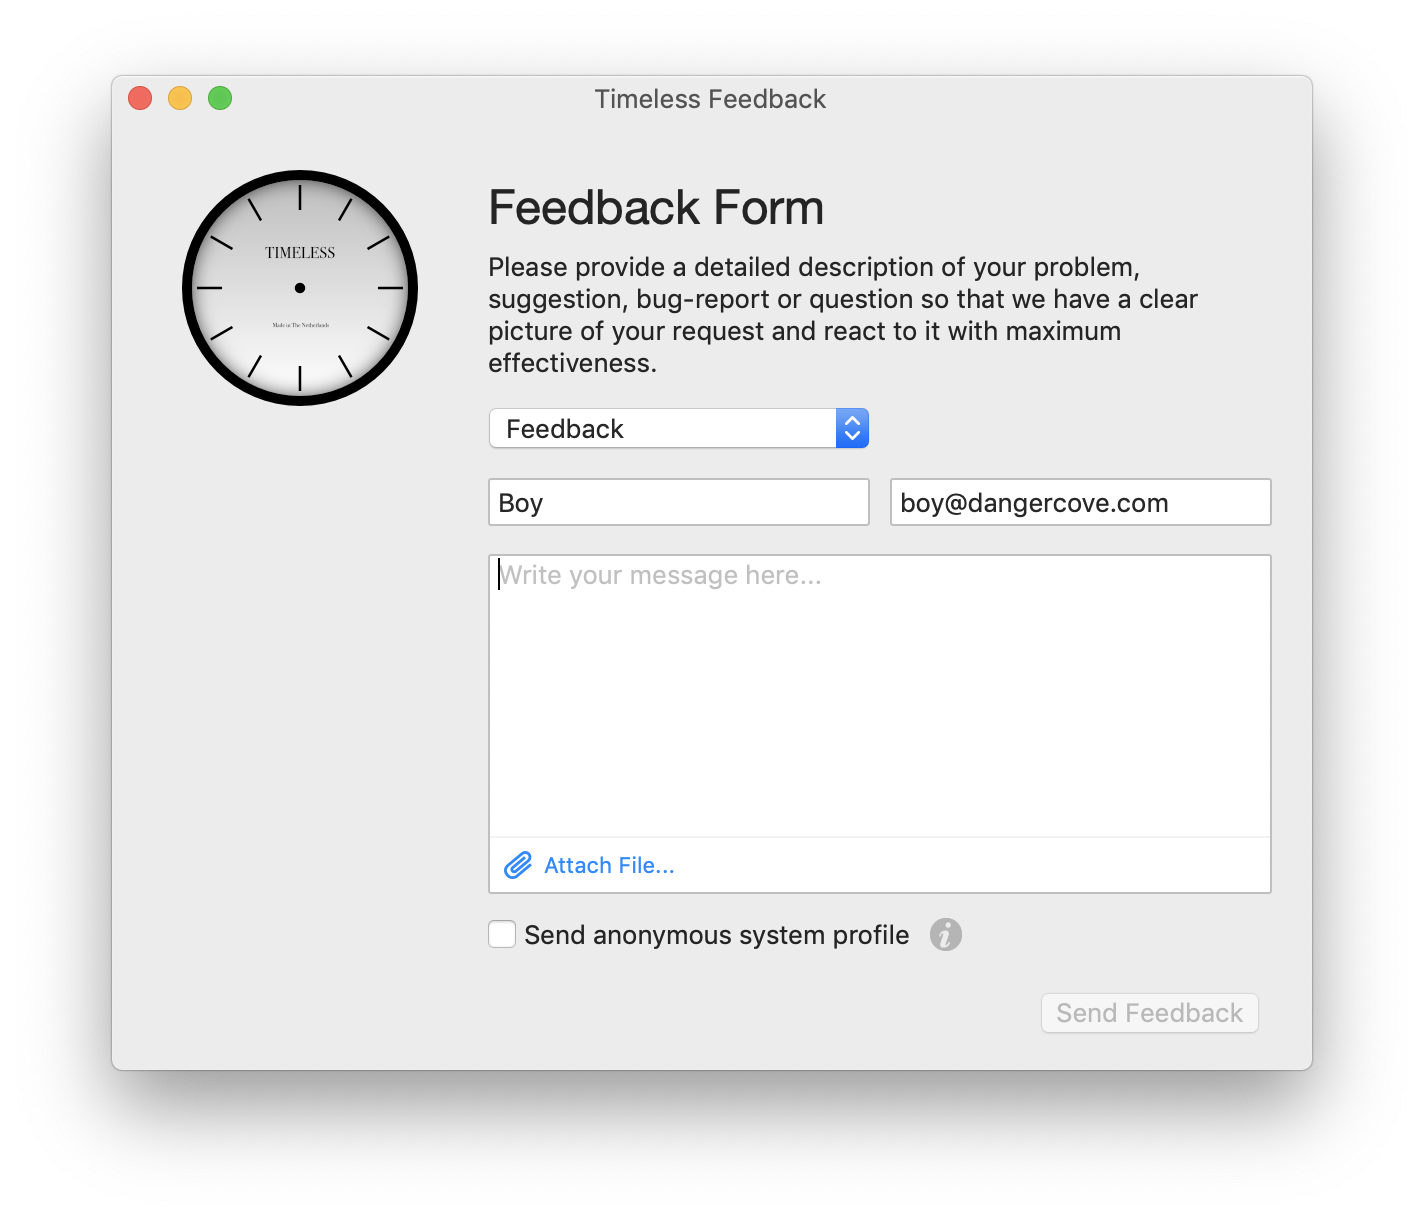 A screenshot of the feedback window built into Timeless